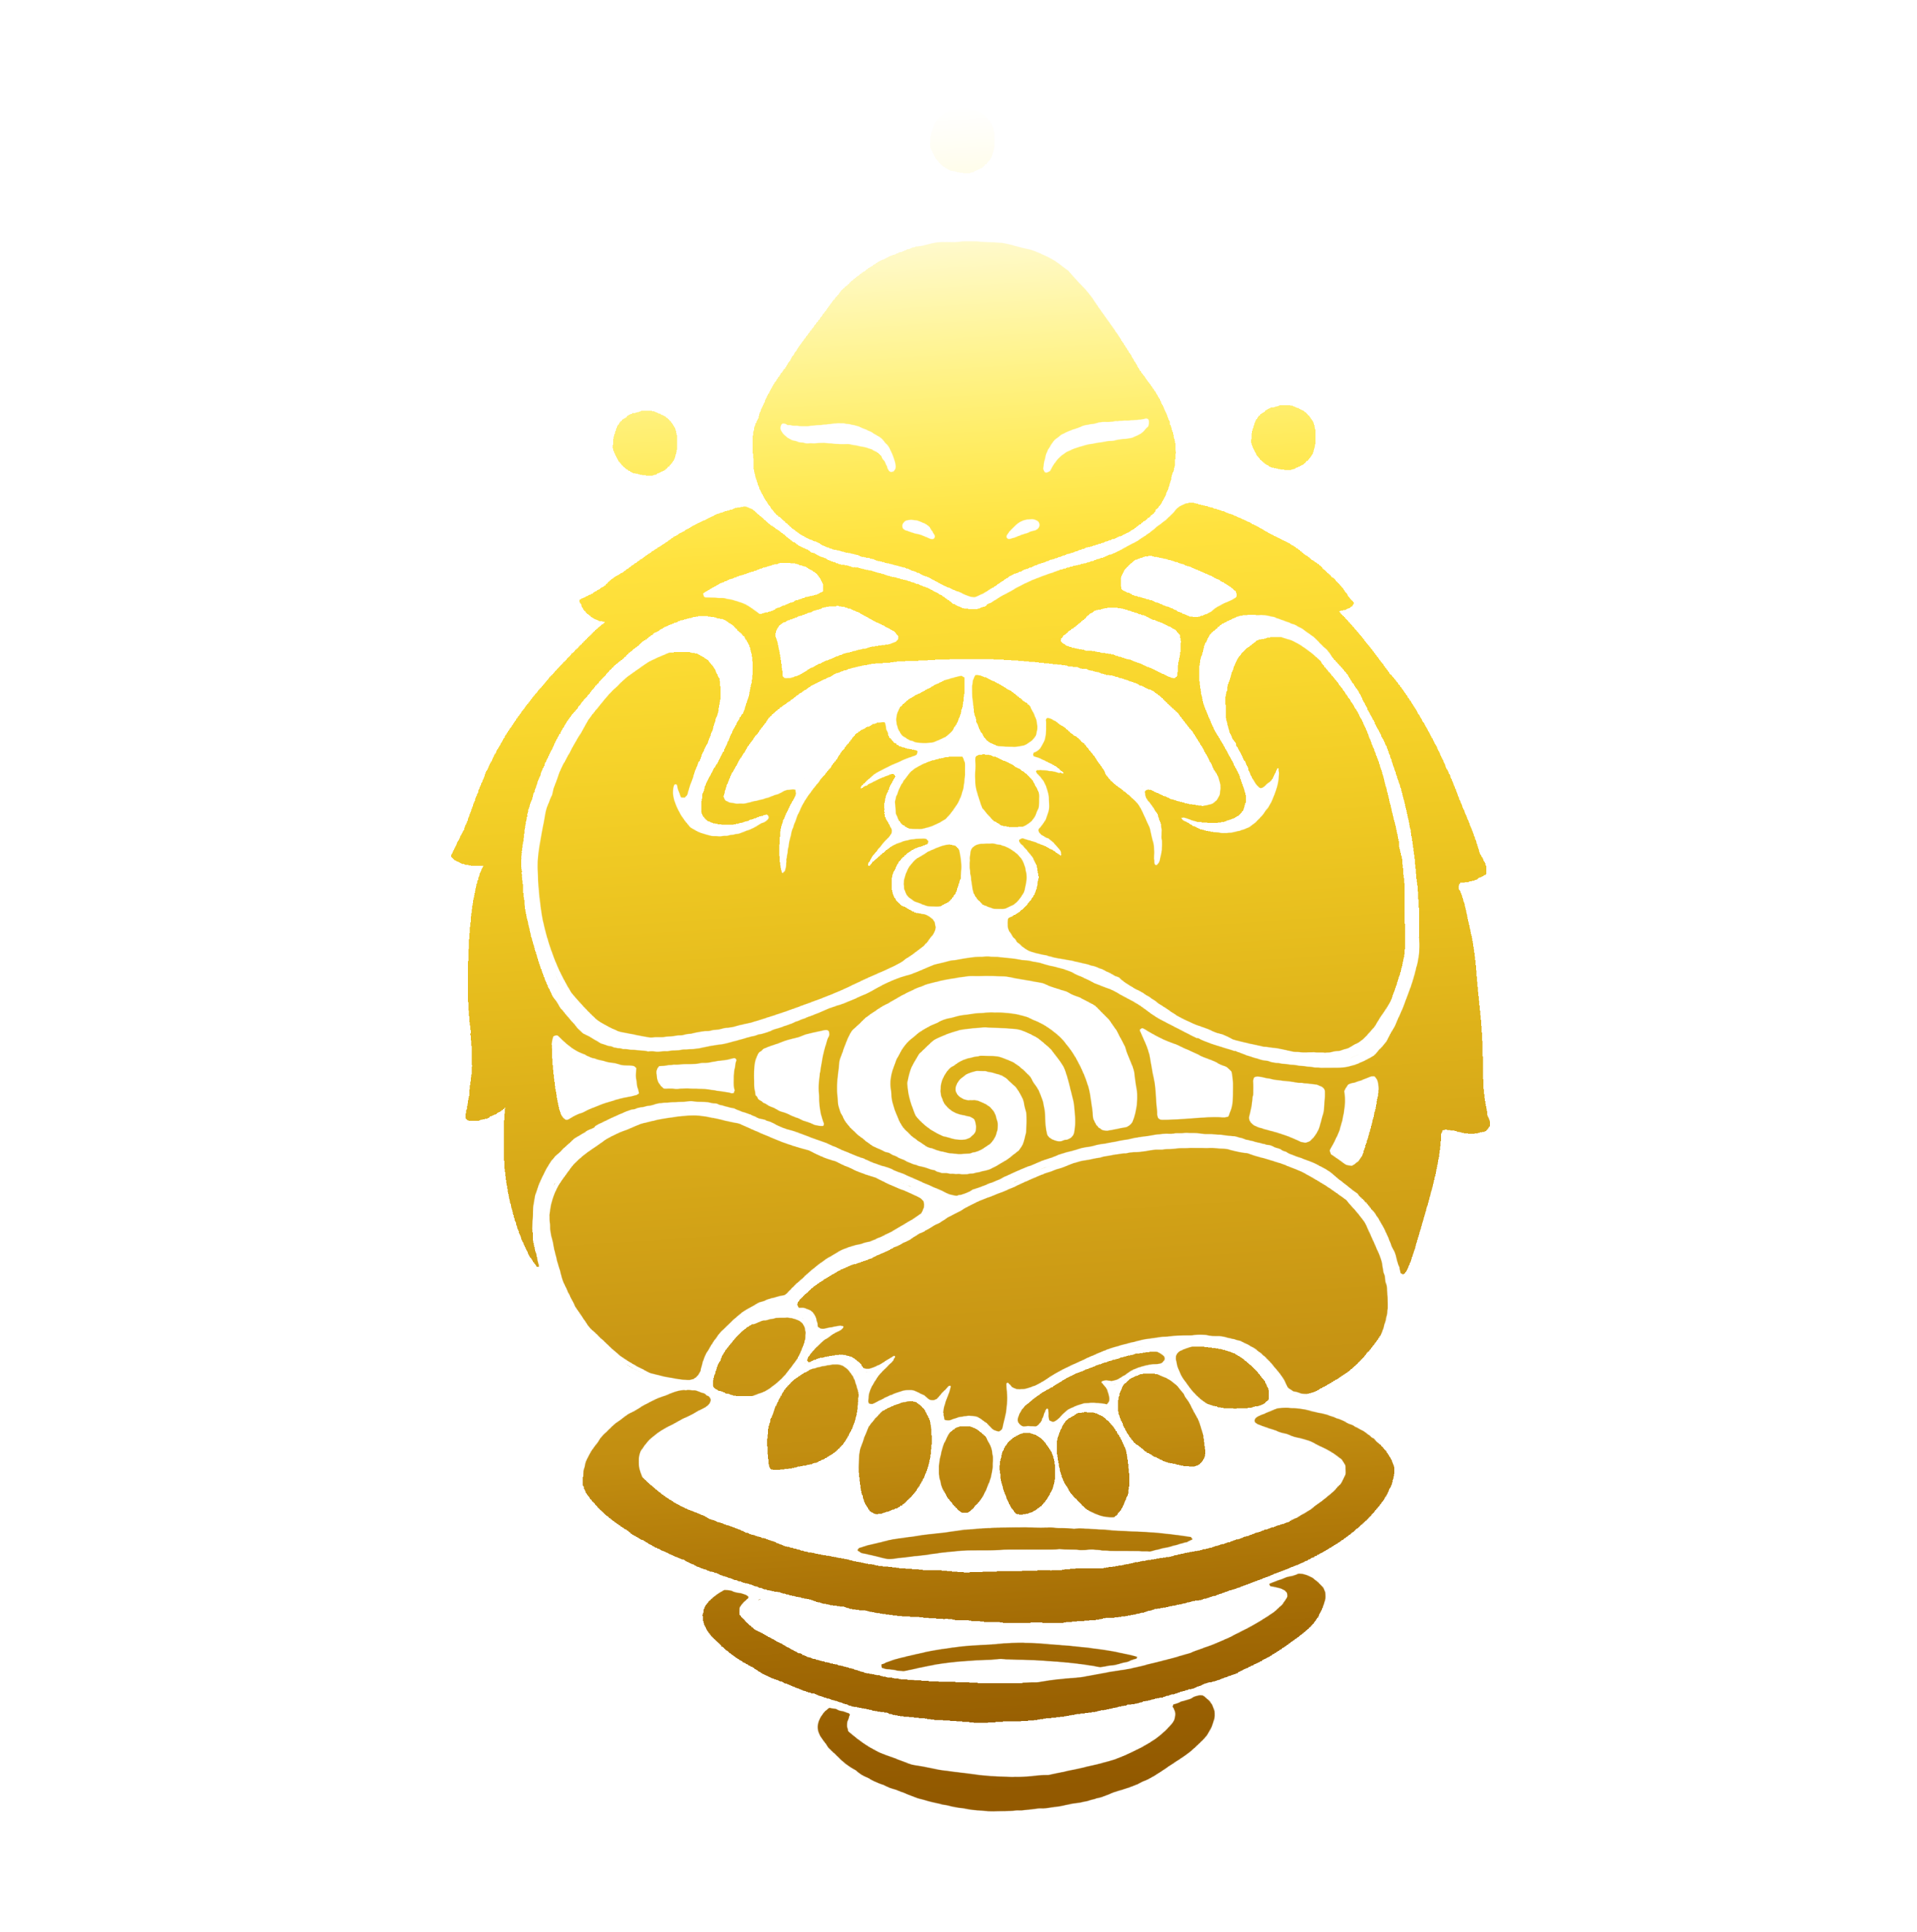 Golden Turtle Sound Logo